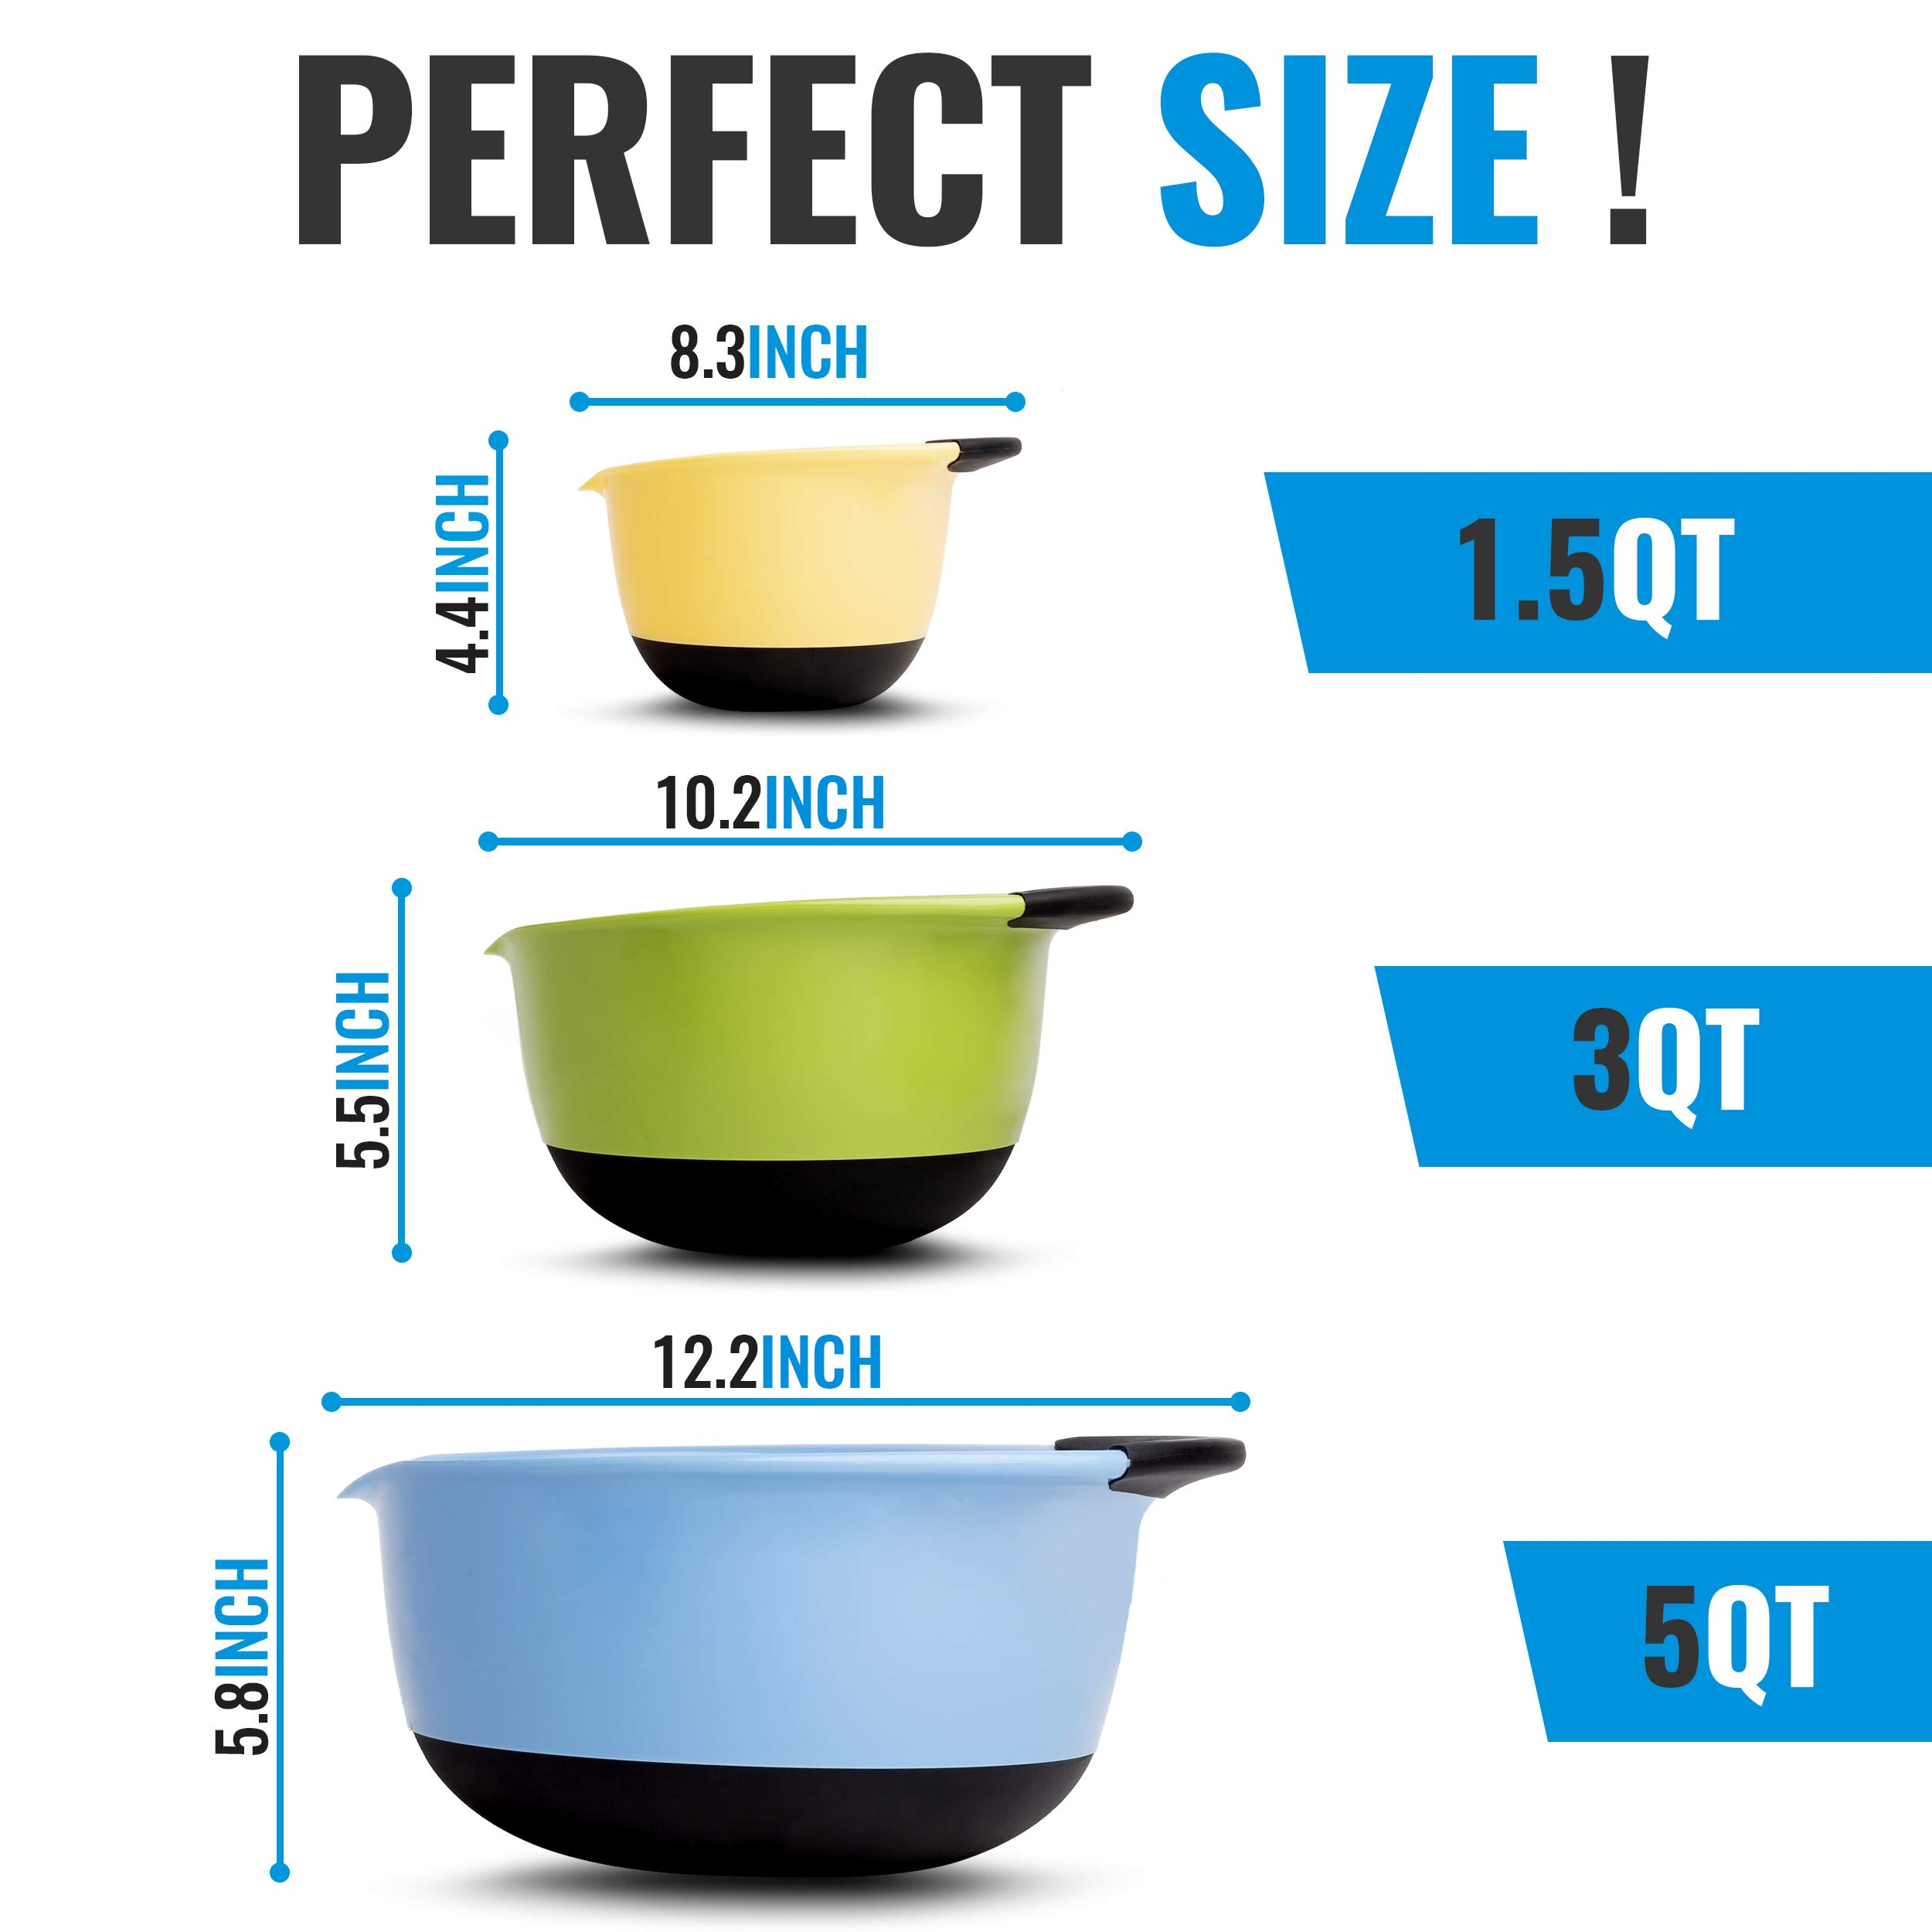 Premium Plastic Mixing Bowls (Set of 3) Sizes: 1.5, 3 & 5 QT - With Non Slip Bottom & Pouring Spout. For Healthy Cooking & Baking, Nesting and Stackable Free Bonus - measuring cup by MONKA (Image #3)